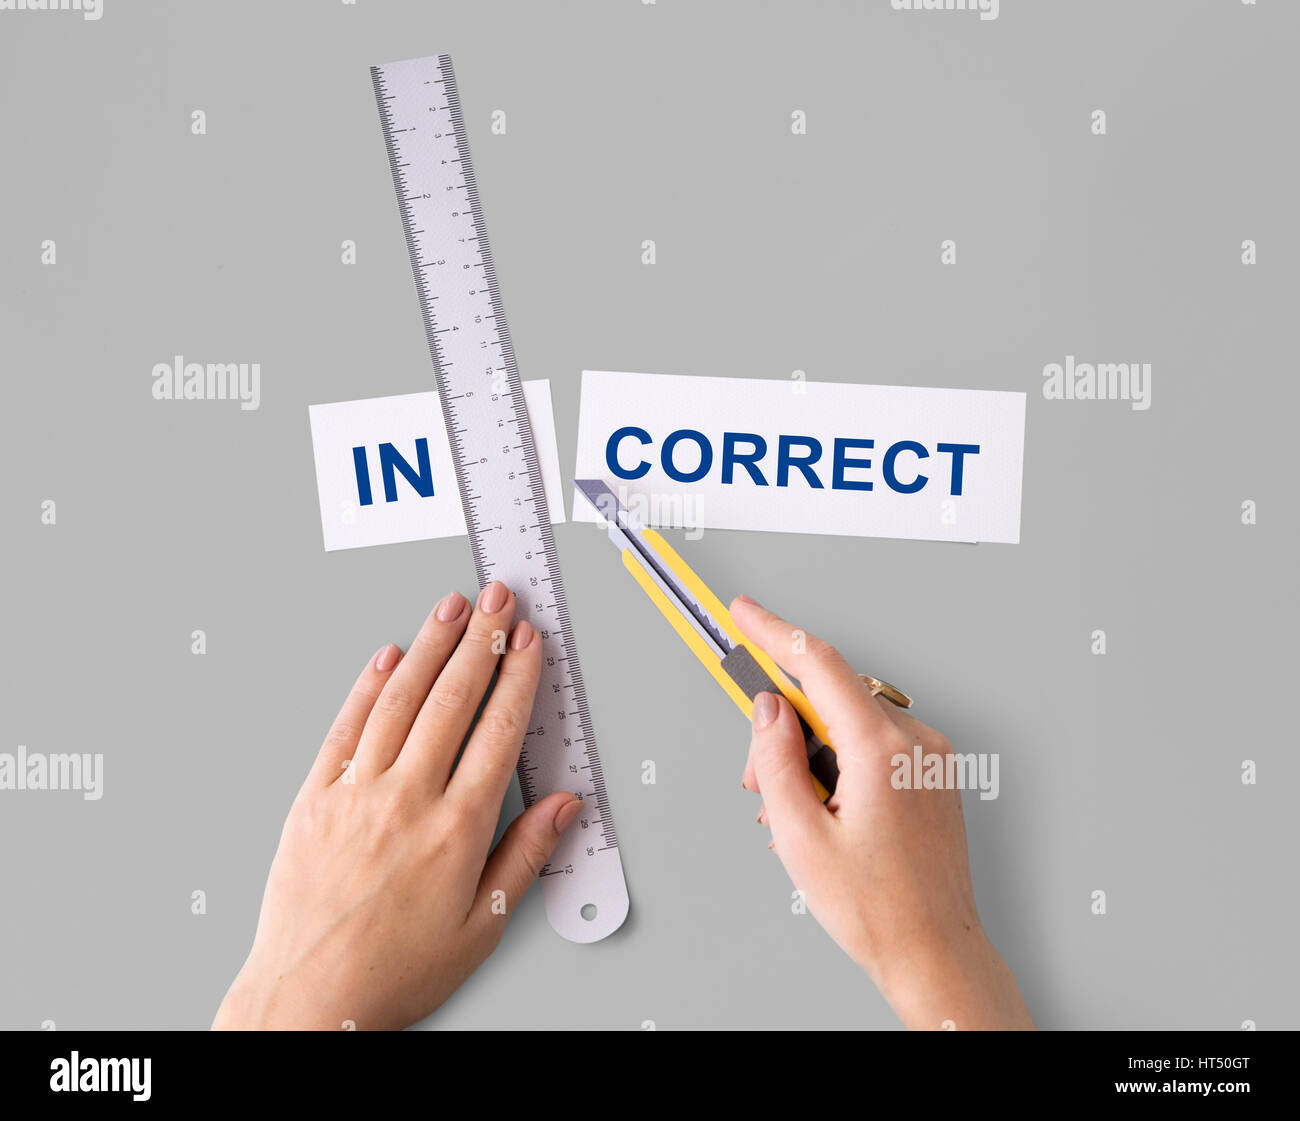 Incorrect Wrong Hand Cut Word Split Concept - Stock Image